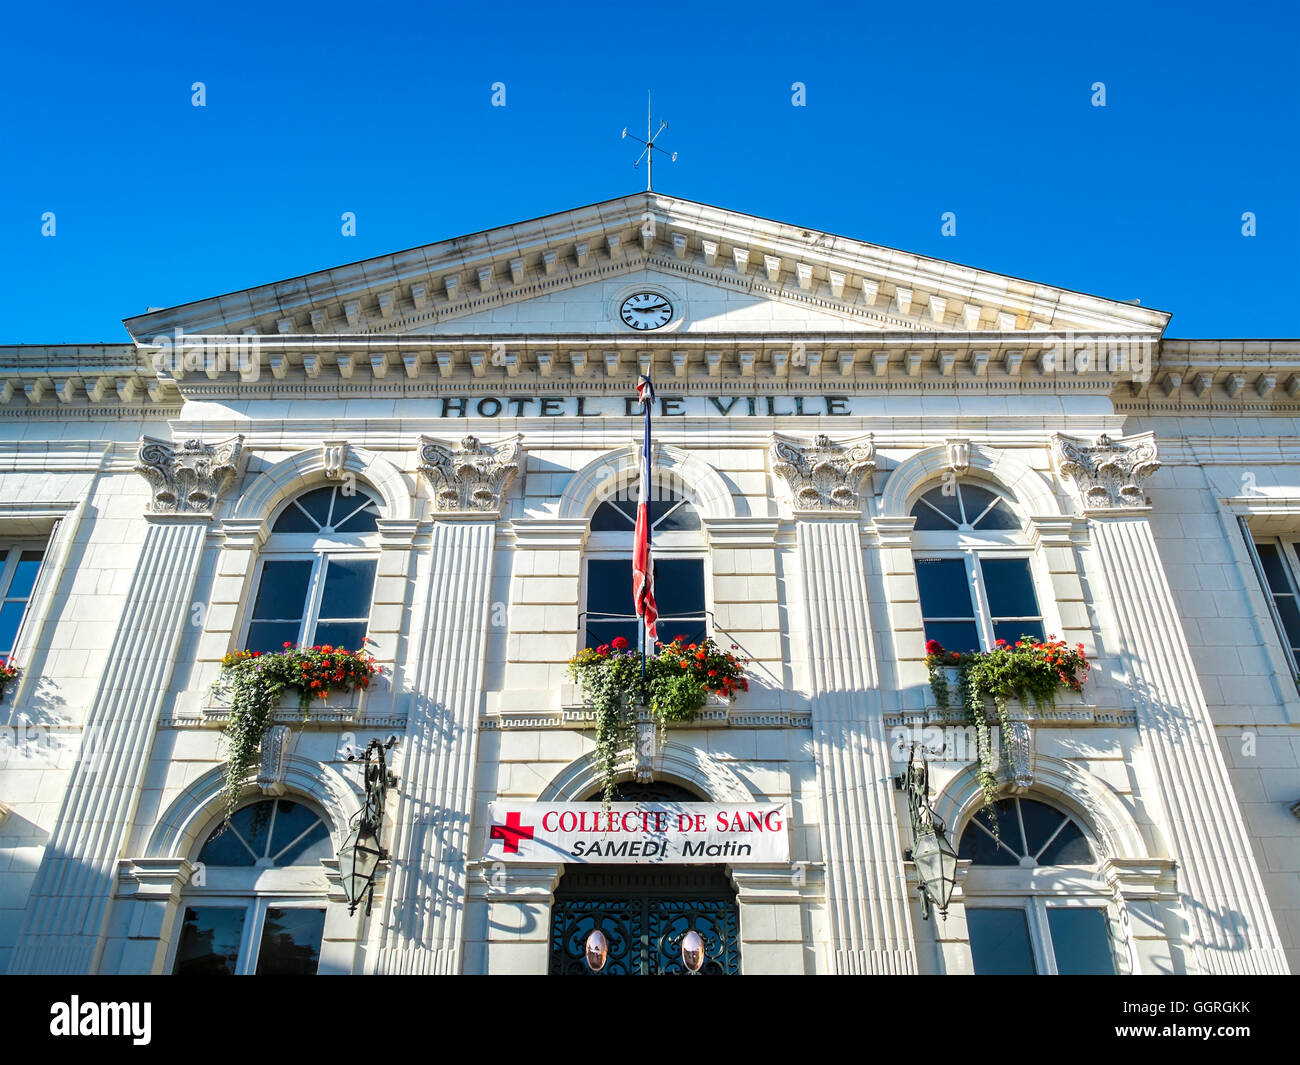 Preuilly-sur-Claise town hall - France. - Stock Image